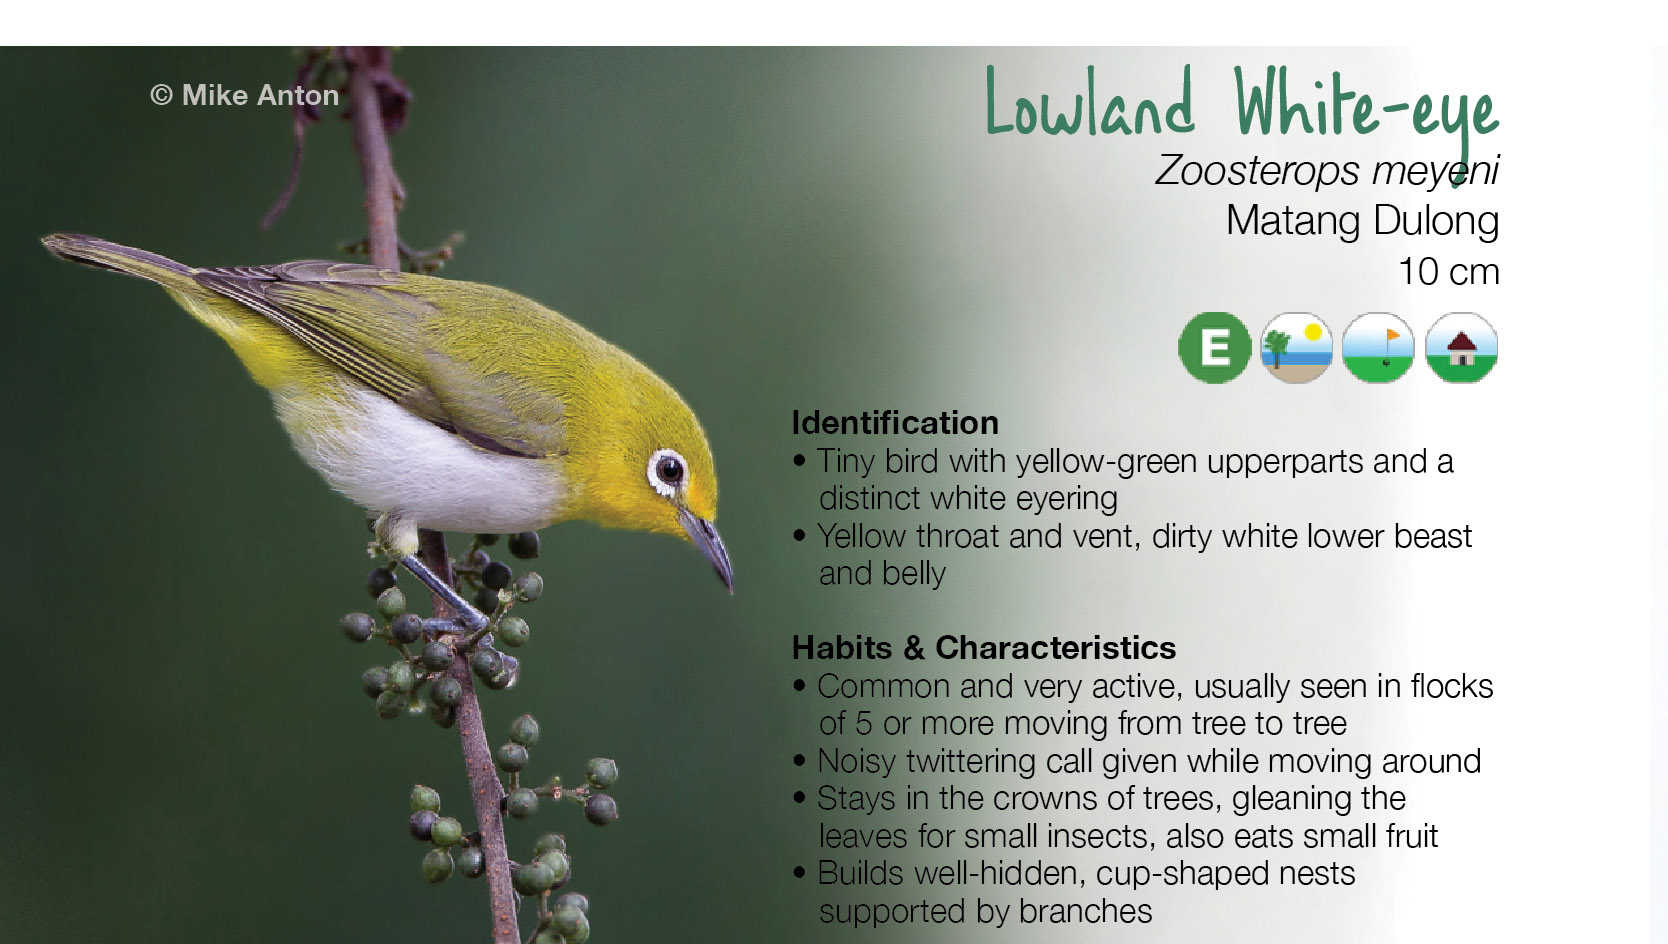 The field guide features beautiful photos of the birds in their habitat and identification tools. Bird Photo by Mike Anton, Text by Adri and Trinket Constantino, Layout by Veronica Peralejo.